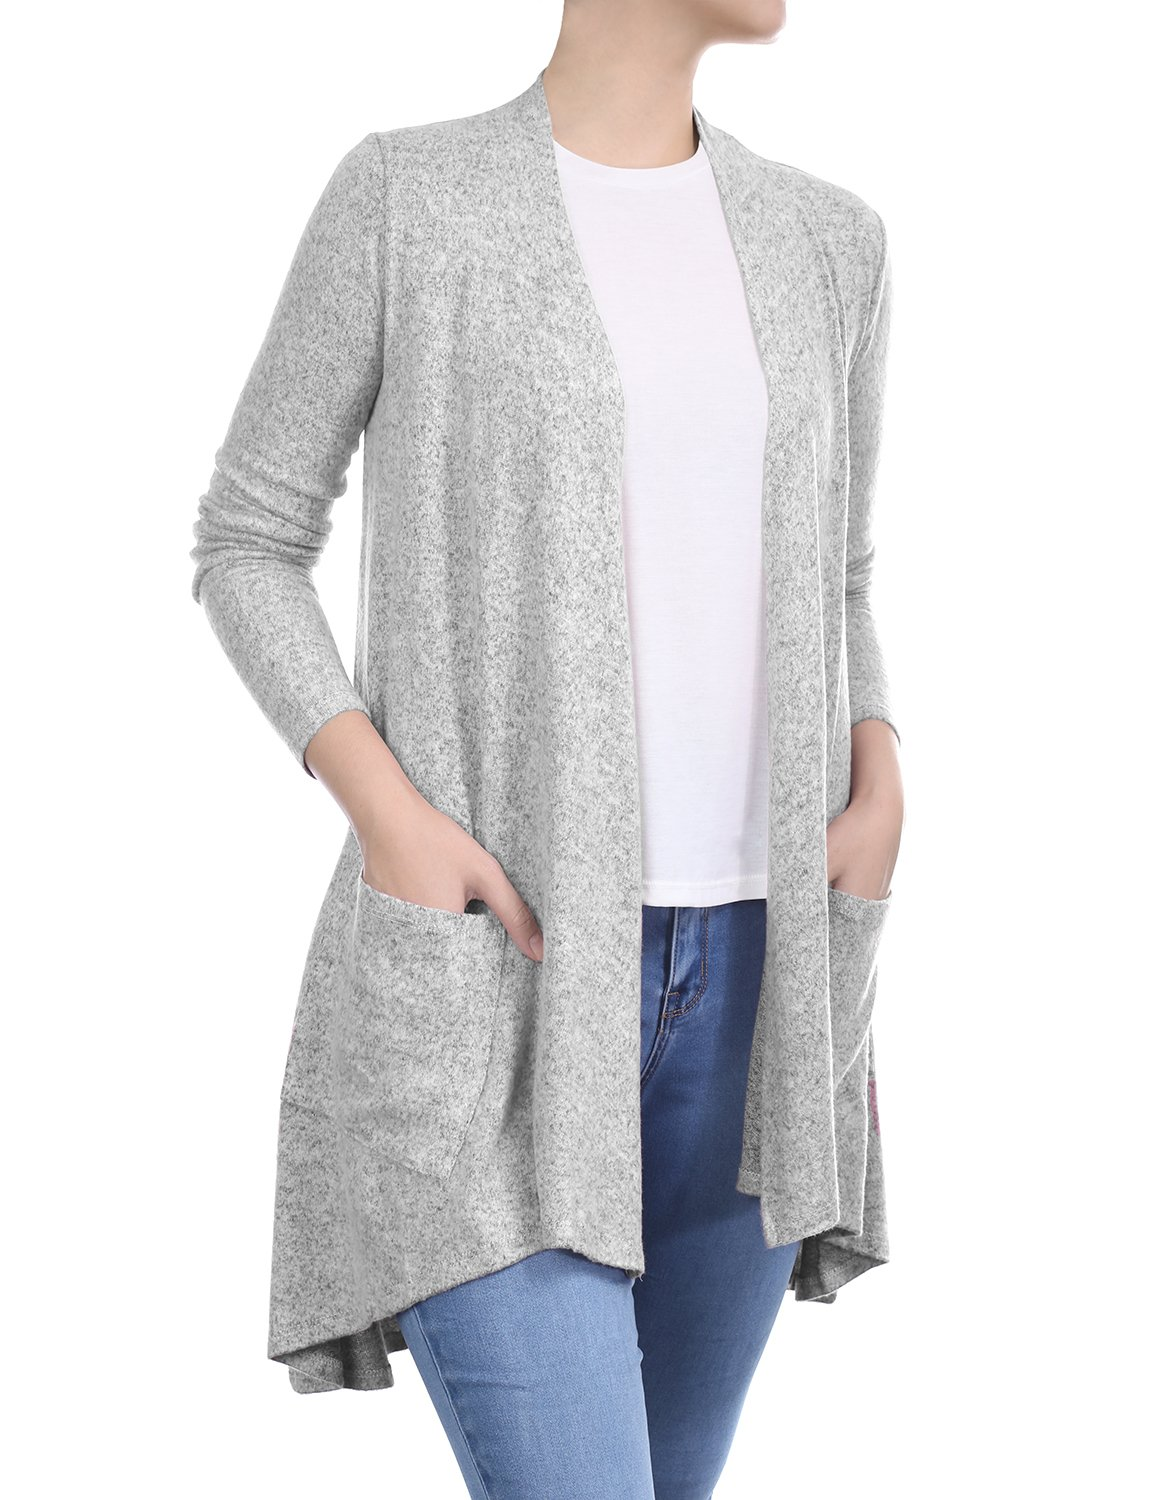 BIADANI Women Long Sleeve Classic Lightweight Front Pockets Cardigan Light Sweater Grey XX-Large by BIADANI